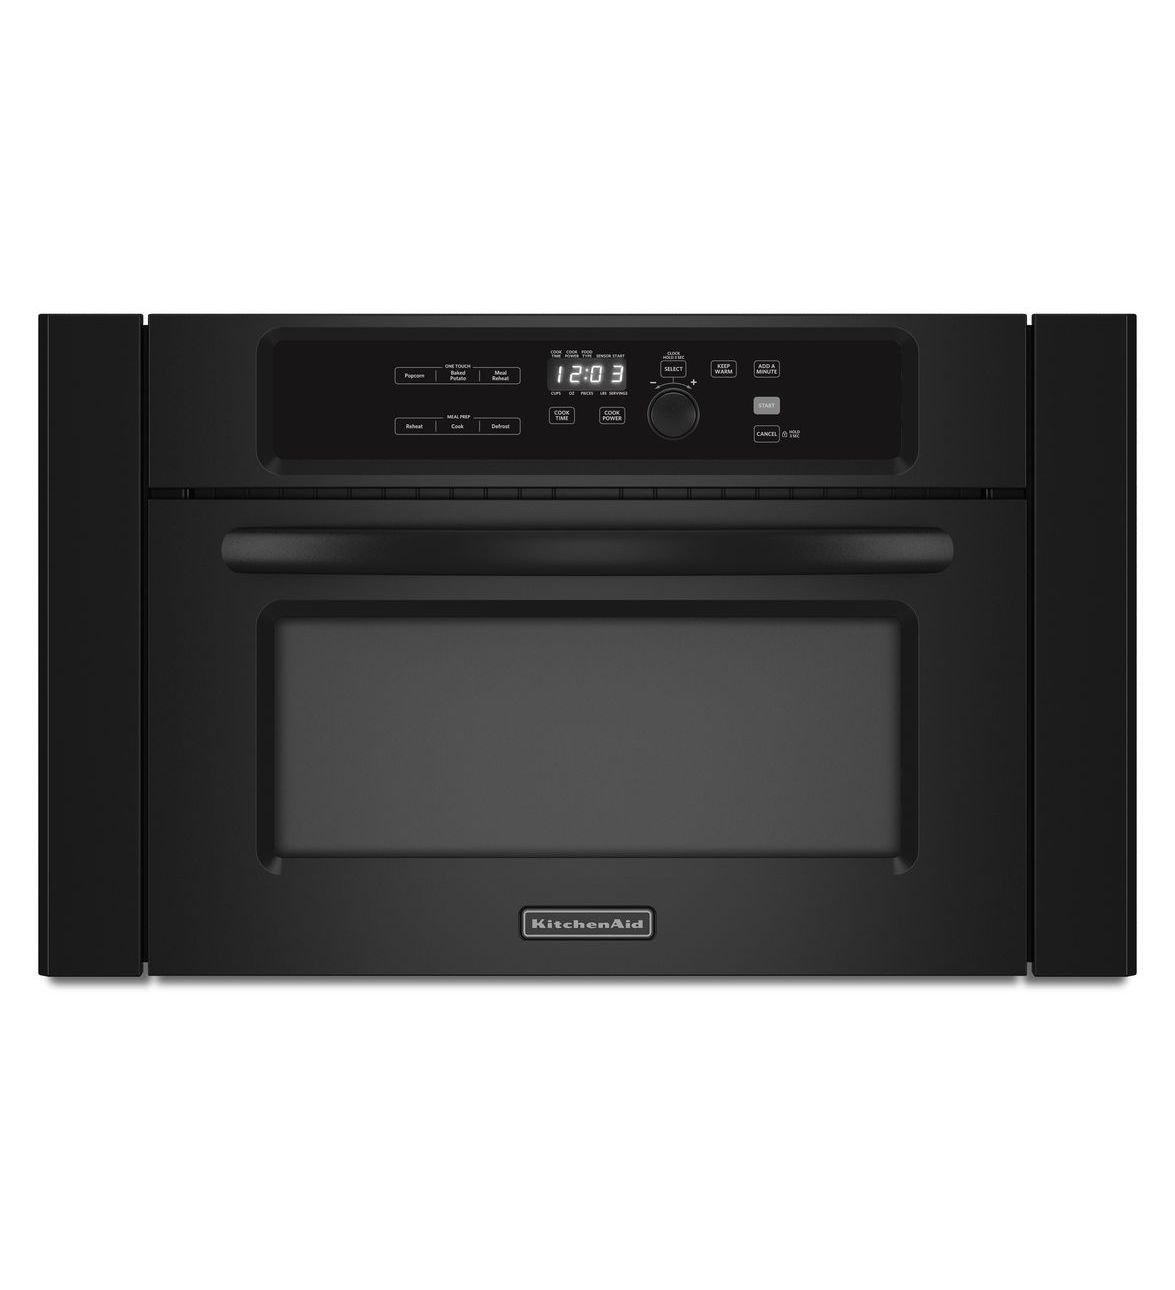 amazoncom kitchenaid kbms1454bbl architect ii 14 cu ft black builtin microwave appliances